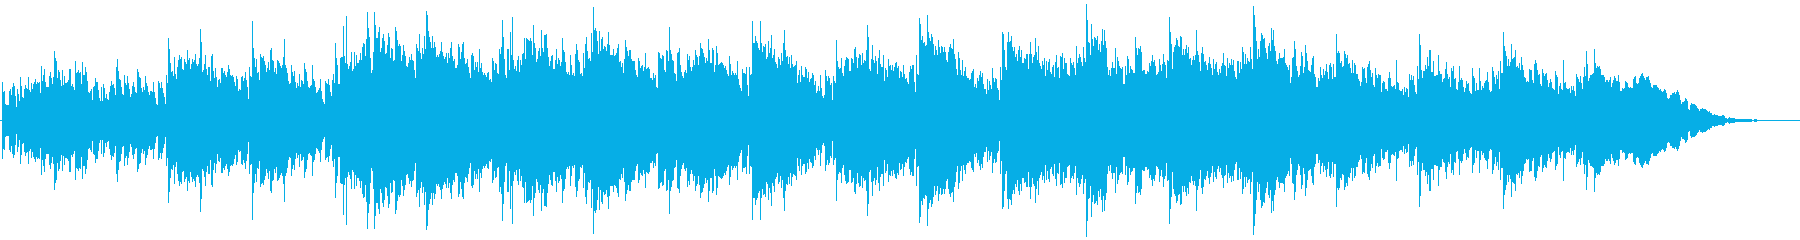 Guitar ambient that spreads in images and movies's reproduced waveform